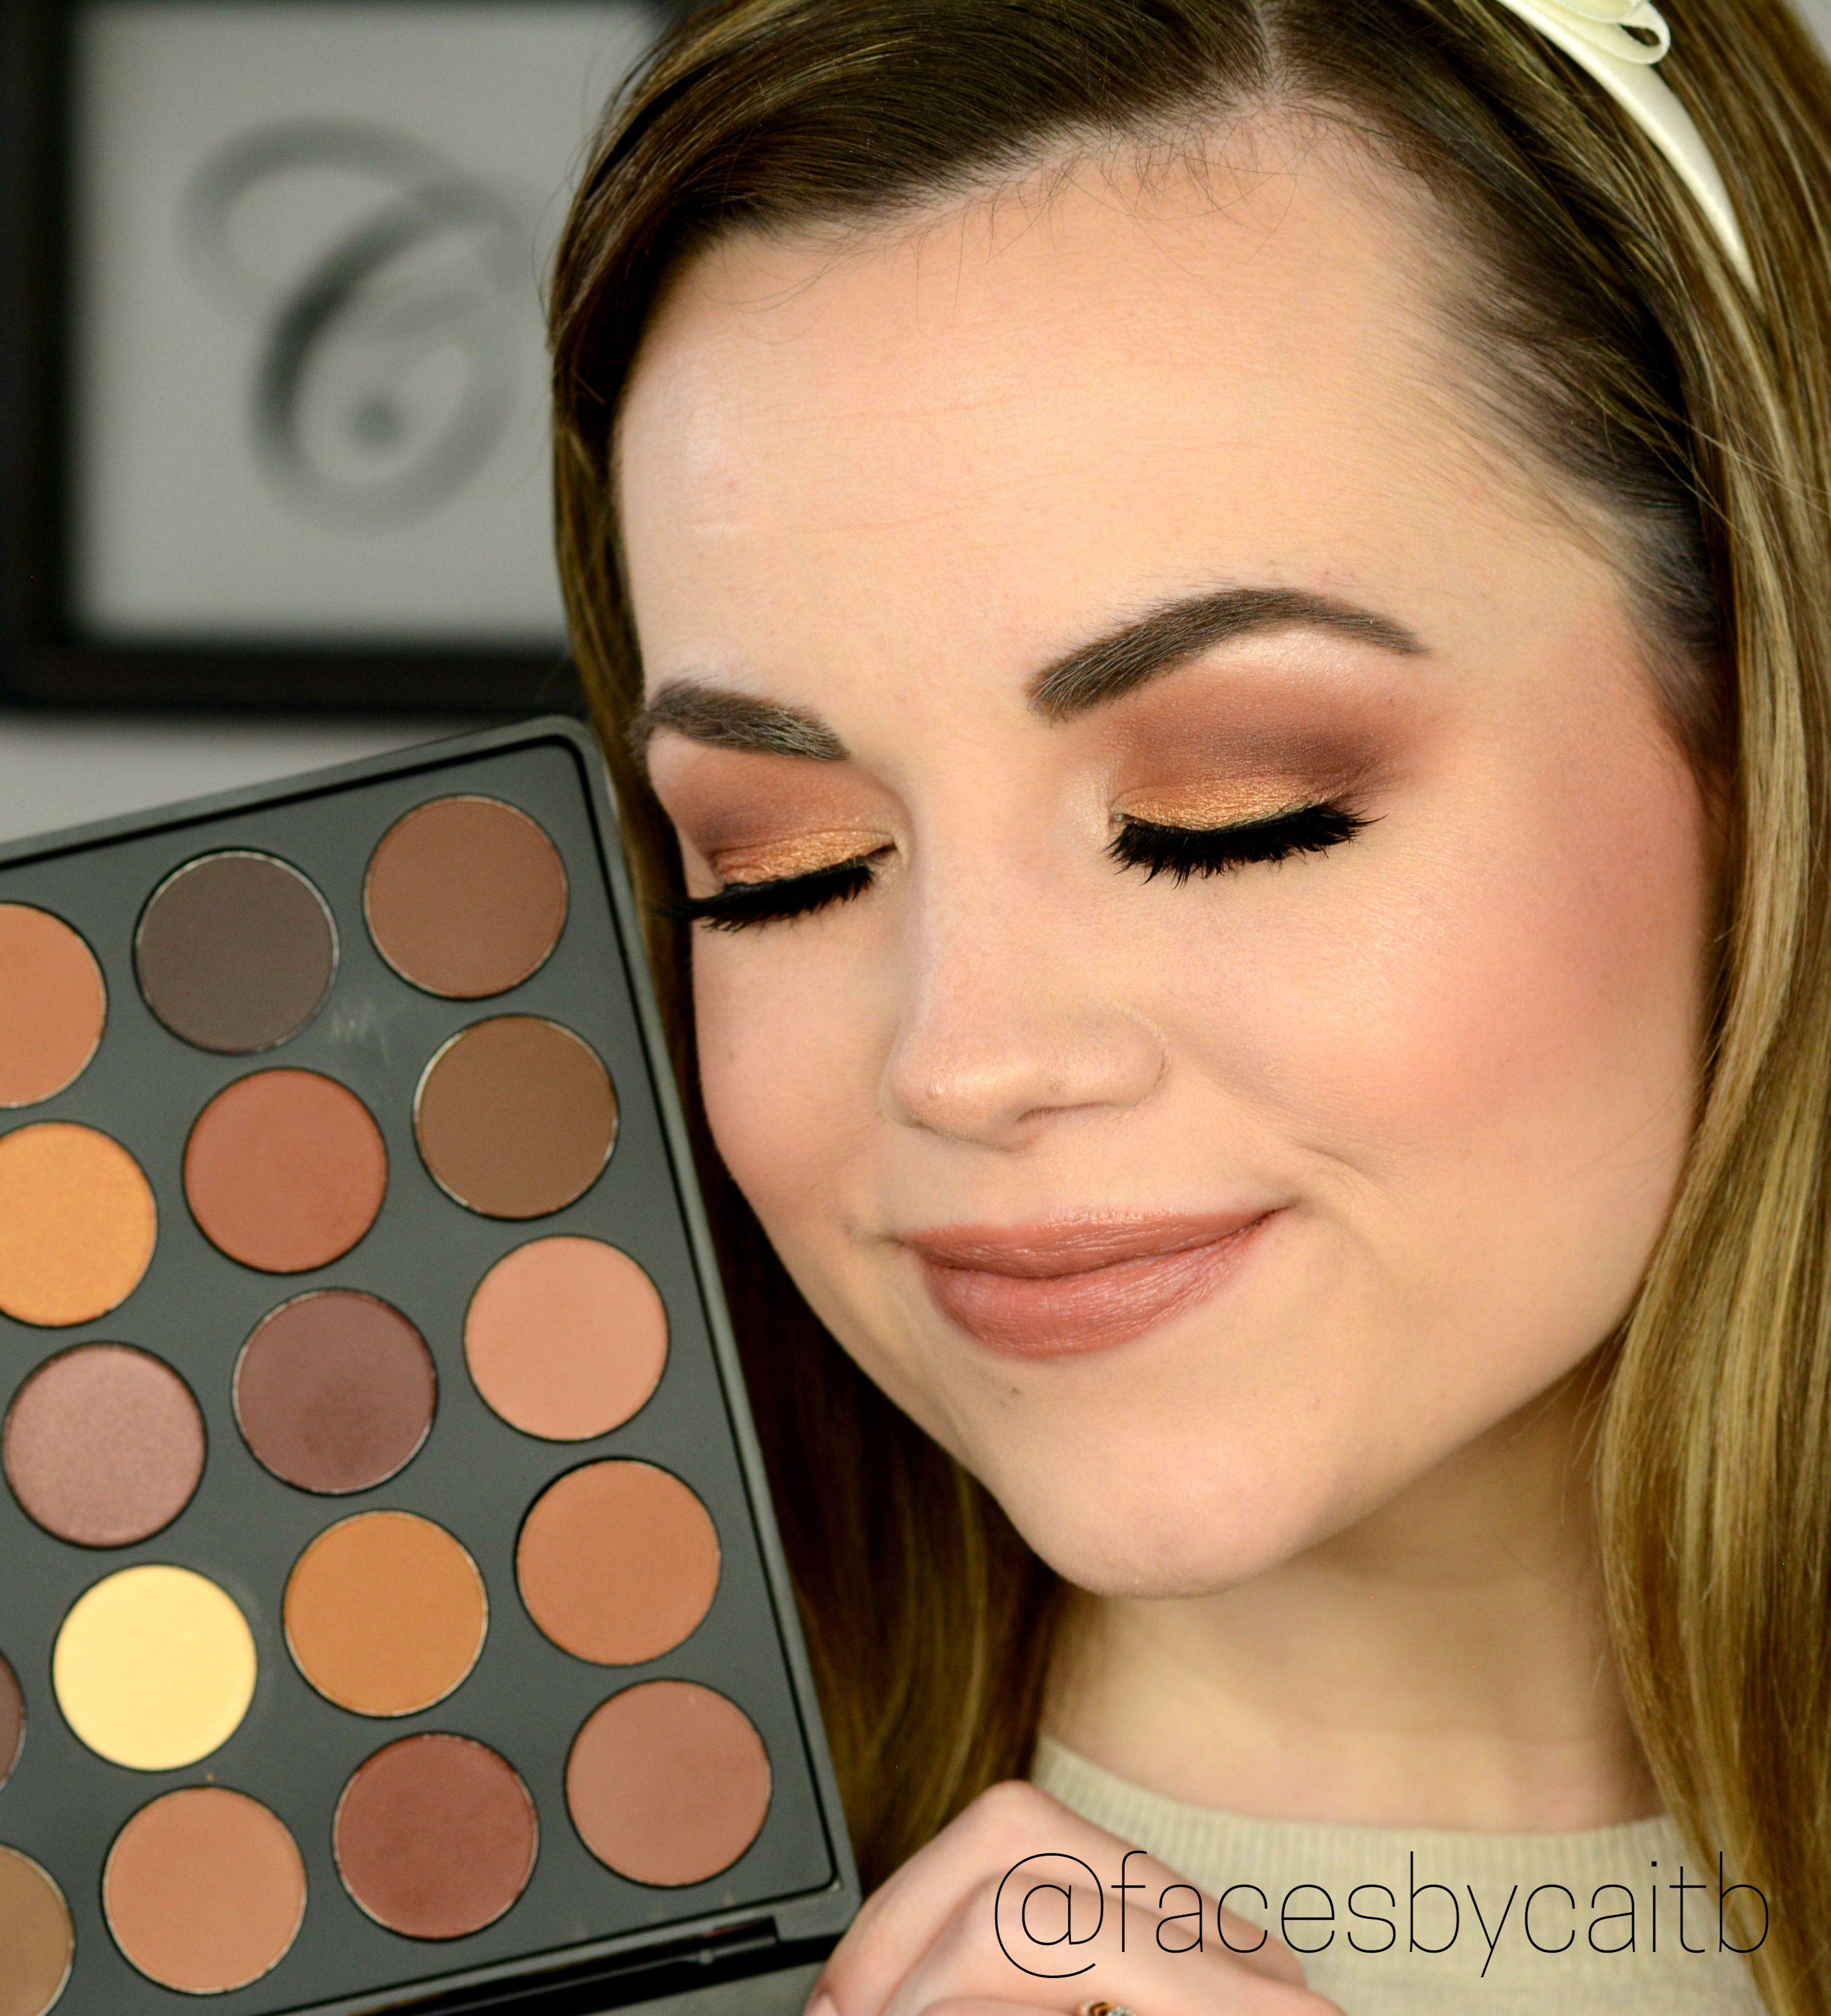 How to even out your eyelids without surgery youtube - Morphe 35r Makeup Tutorial And Review Youtube Com Facesbycaitb